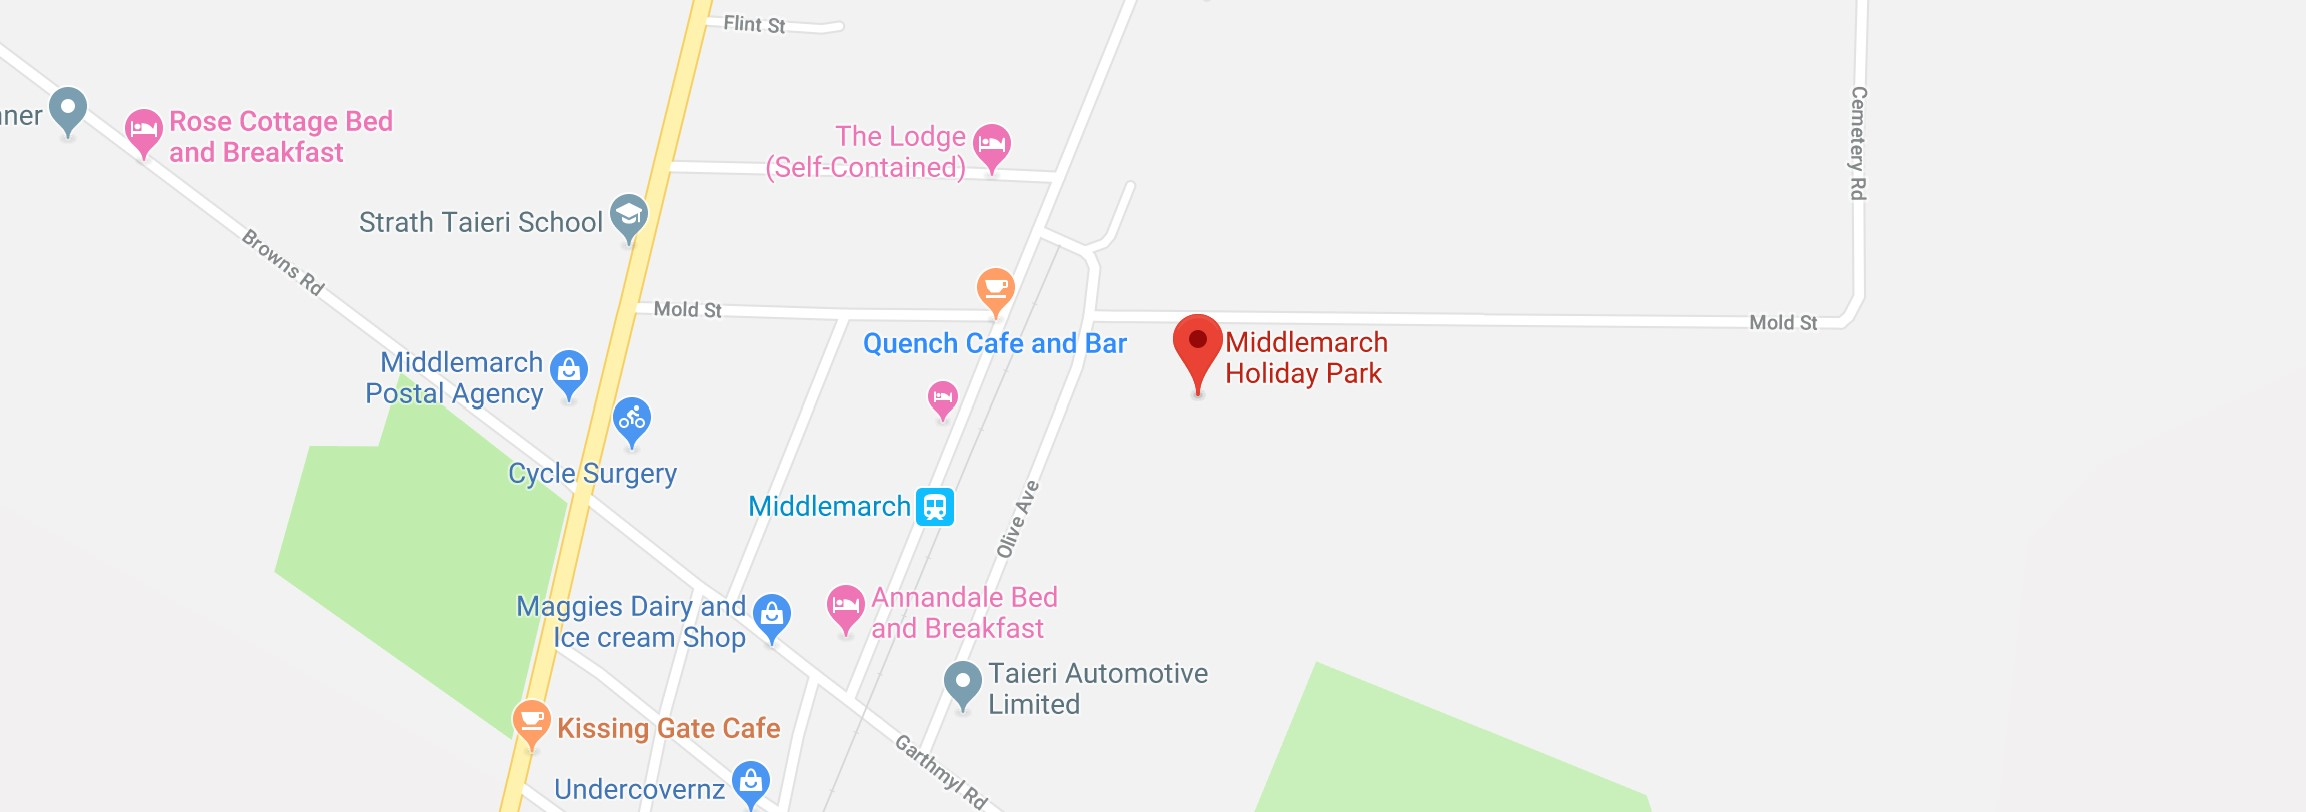 Welcome to Middlemarch Holiday Park - Middlemarch Holiday Park